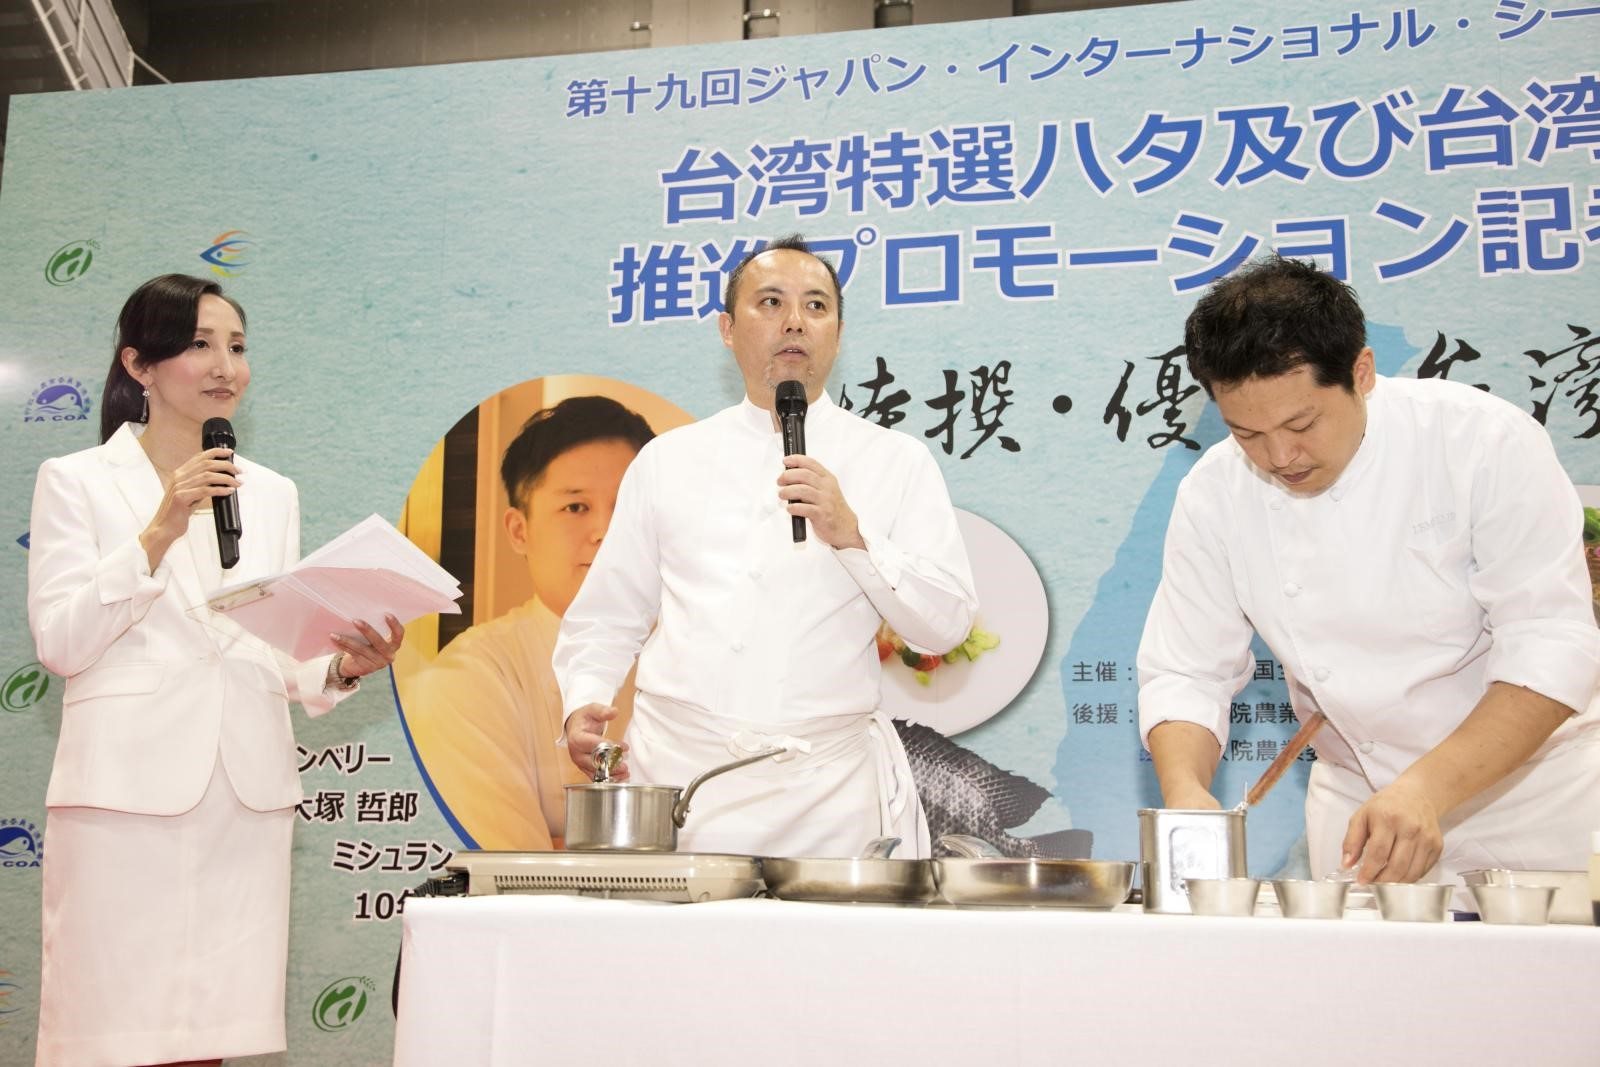 Endorsed by renowned Japanese chef Naoto Kishimoto, Taiwan's aquatic products seek to expand diverse marketing channels.